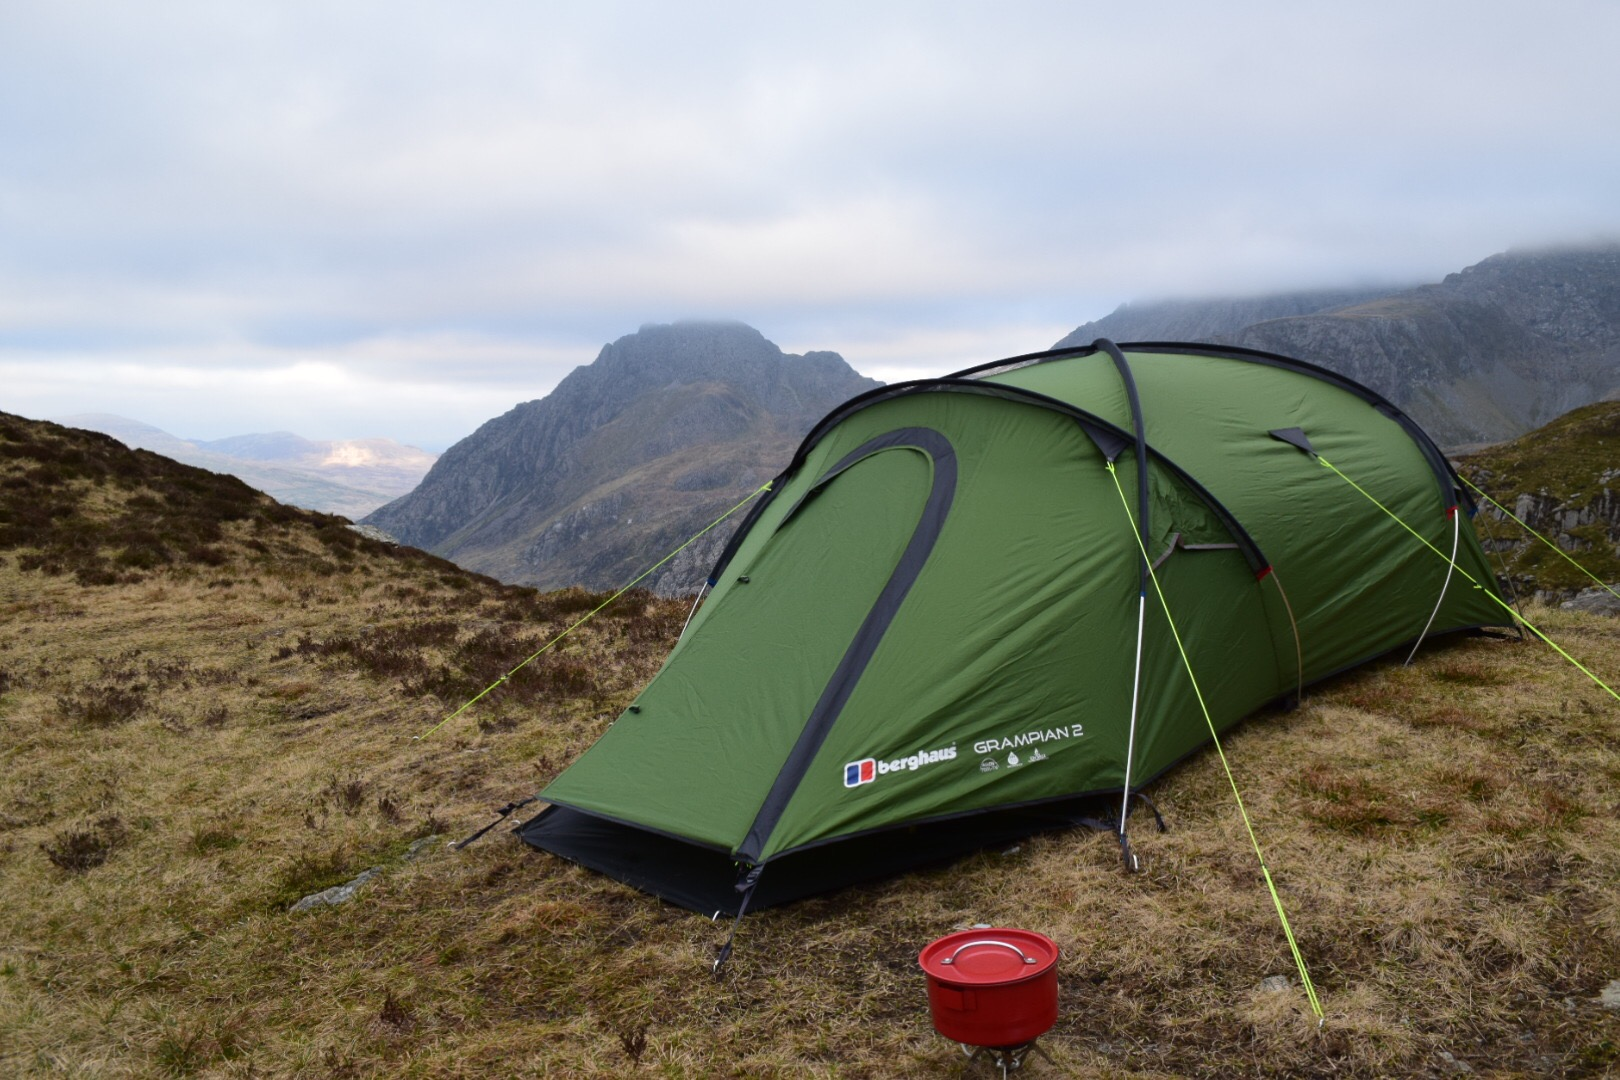 ... and explore the wonderful wilder regions around you then a good quality tent is a must. This two-person all-season offering from Berghaus may just be ... & Berghaus Grampian 2 Tent Review - Potty Adventures